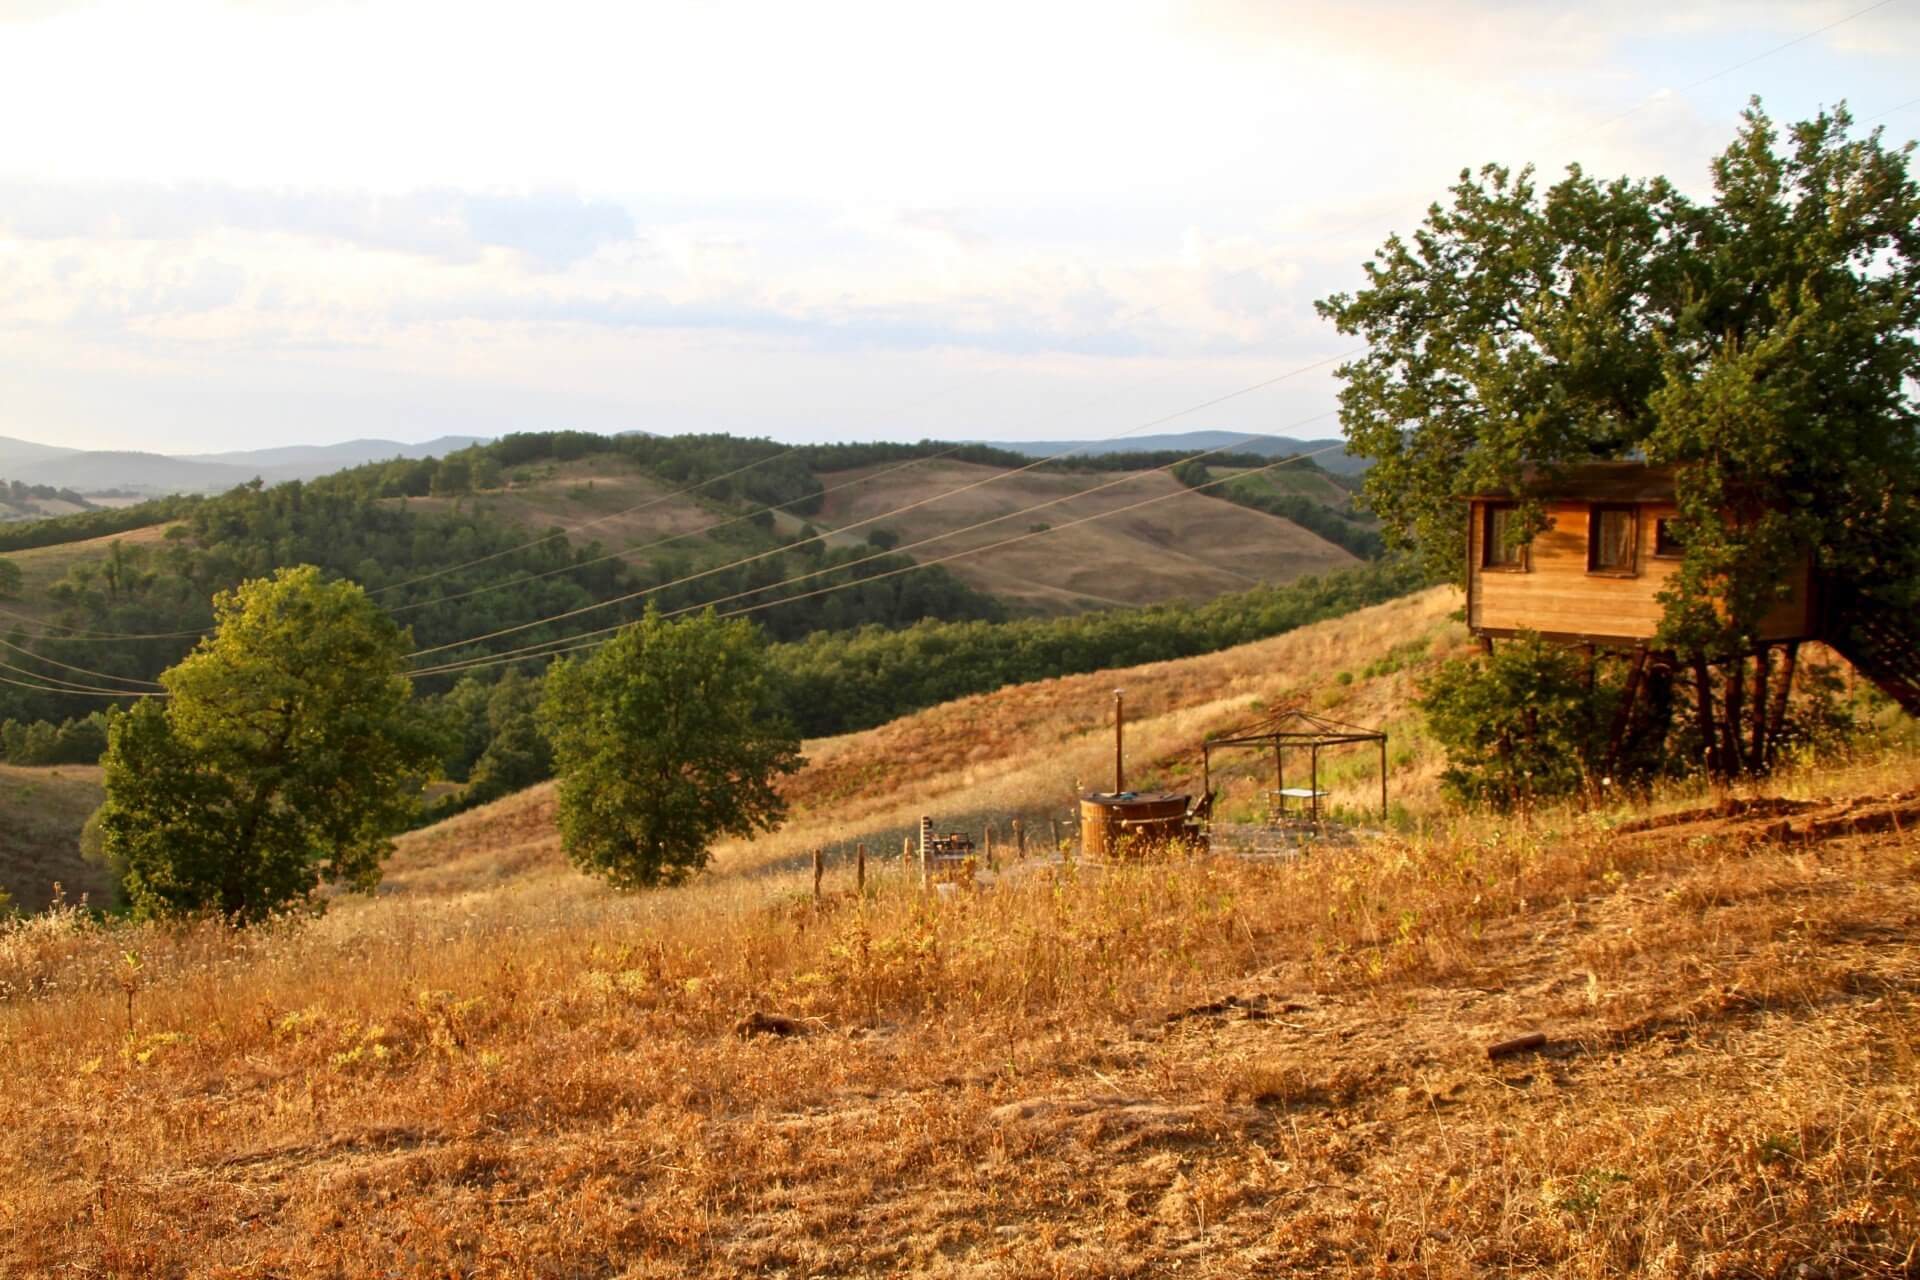 GLAMPING IL SOLE 4 PASSIONE GLAMPING